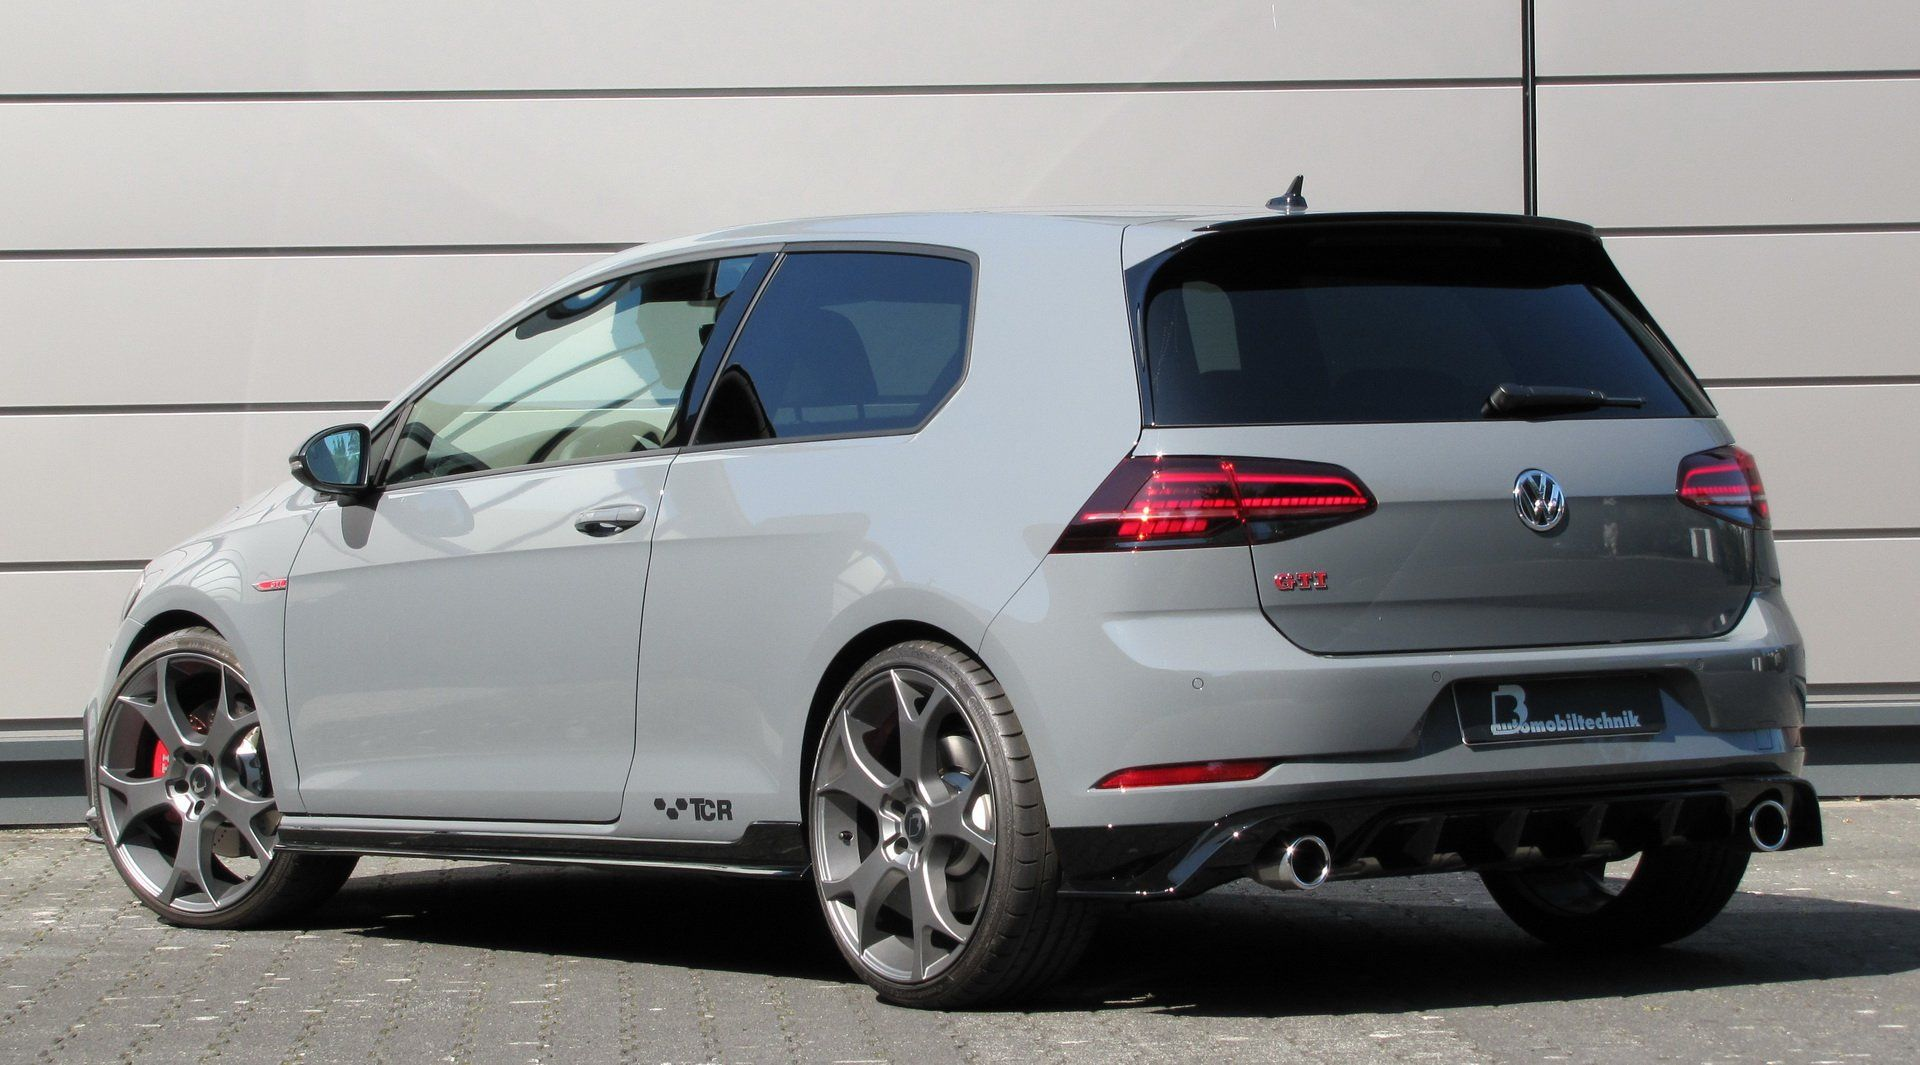 450ps Vw Golf Gti Tcr Is One Brave Fwd Mega Hatch Volkswagen